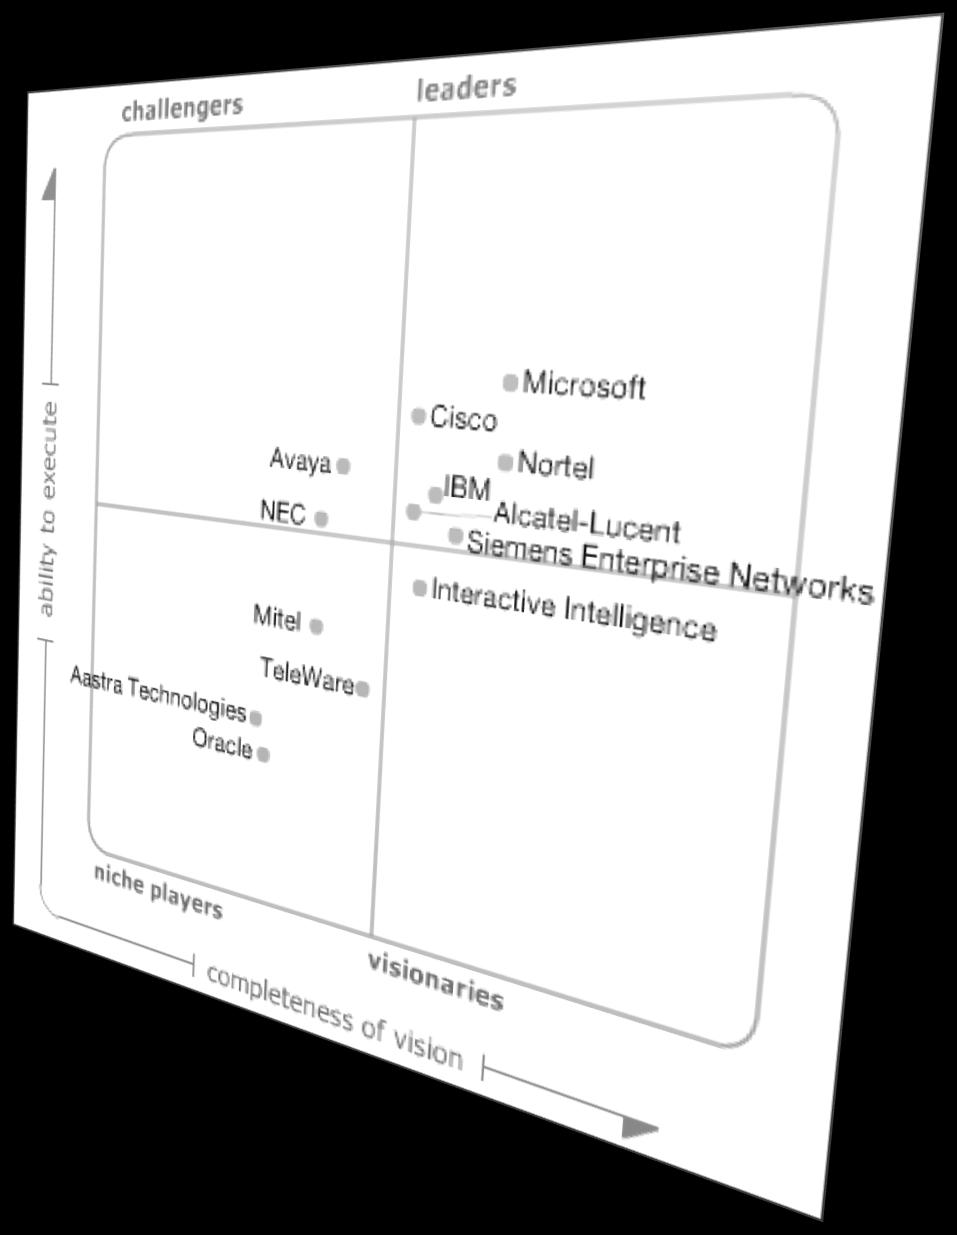 Market Momentum 2008 The Magic Quadrant is copyrighted August 2007 by Gartner, Inc. and is reused with permission.